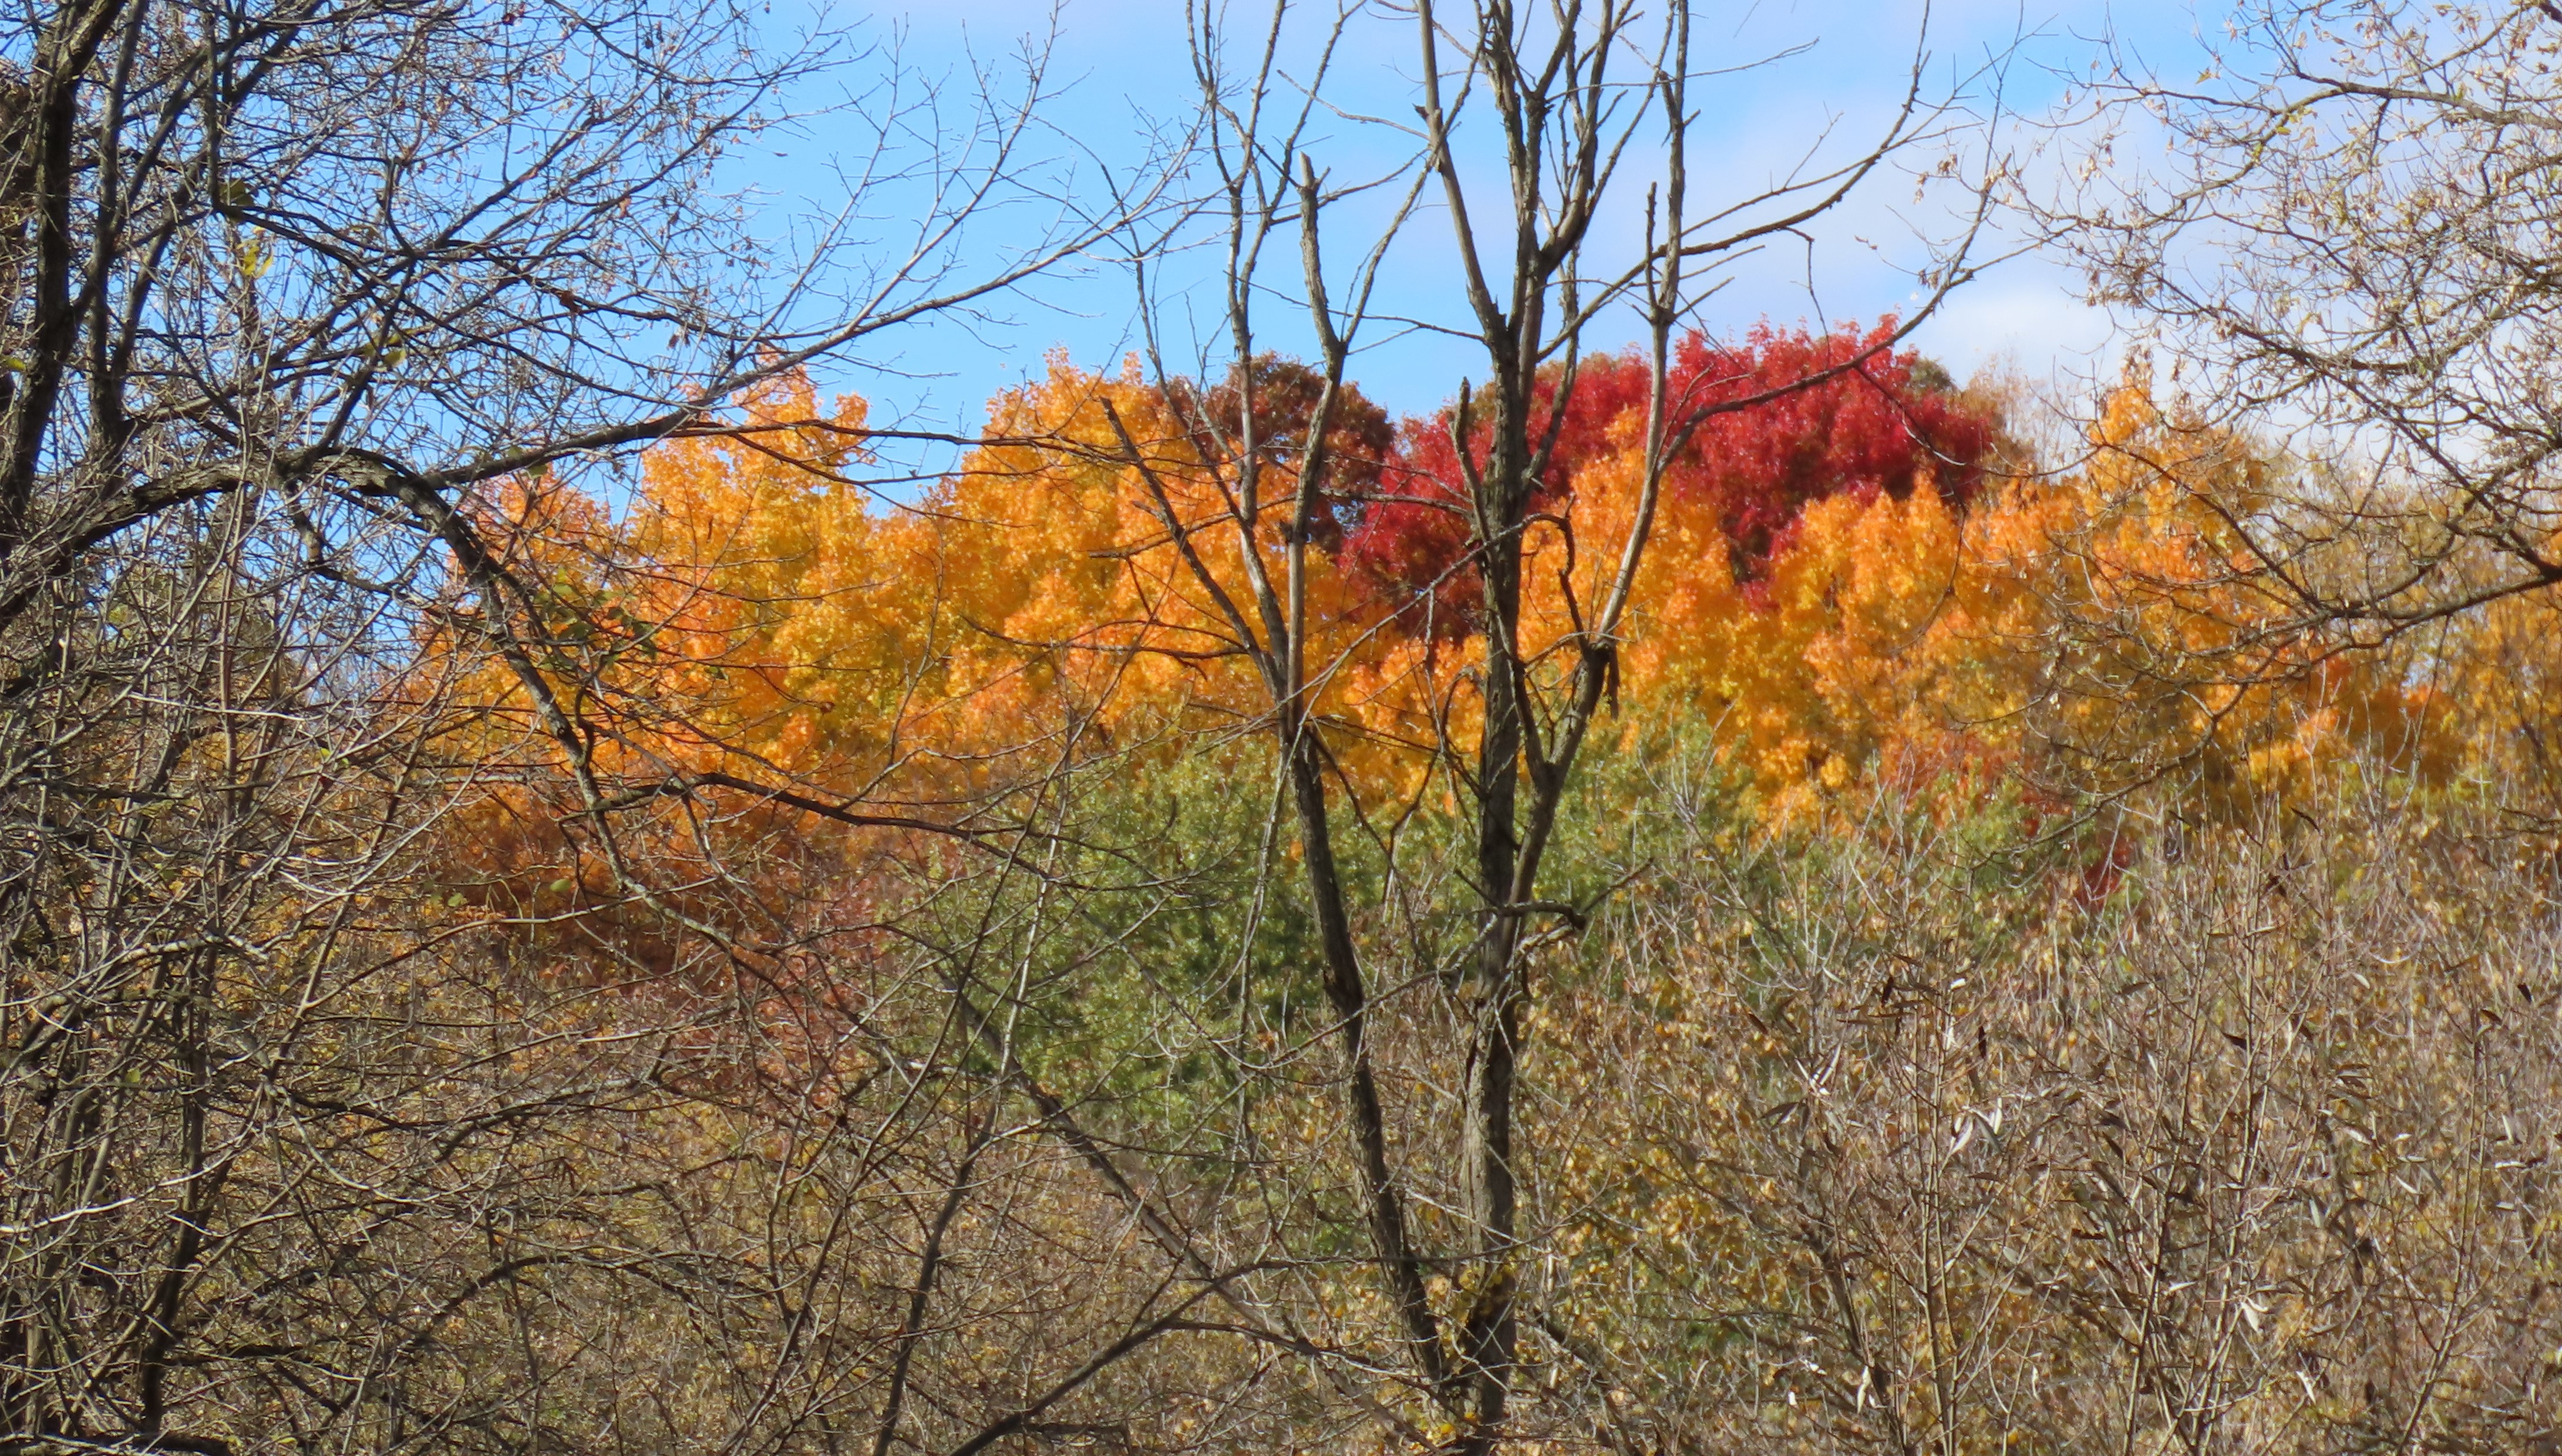 Trees dressed in autumn colors of red, orange, brown, and yellow